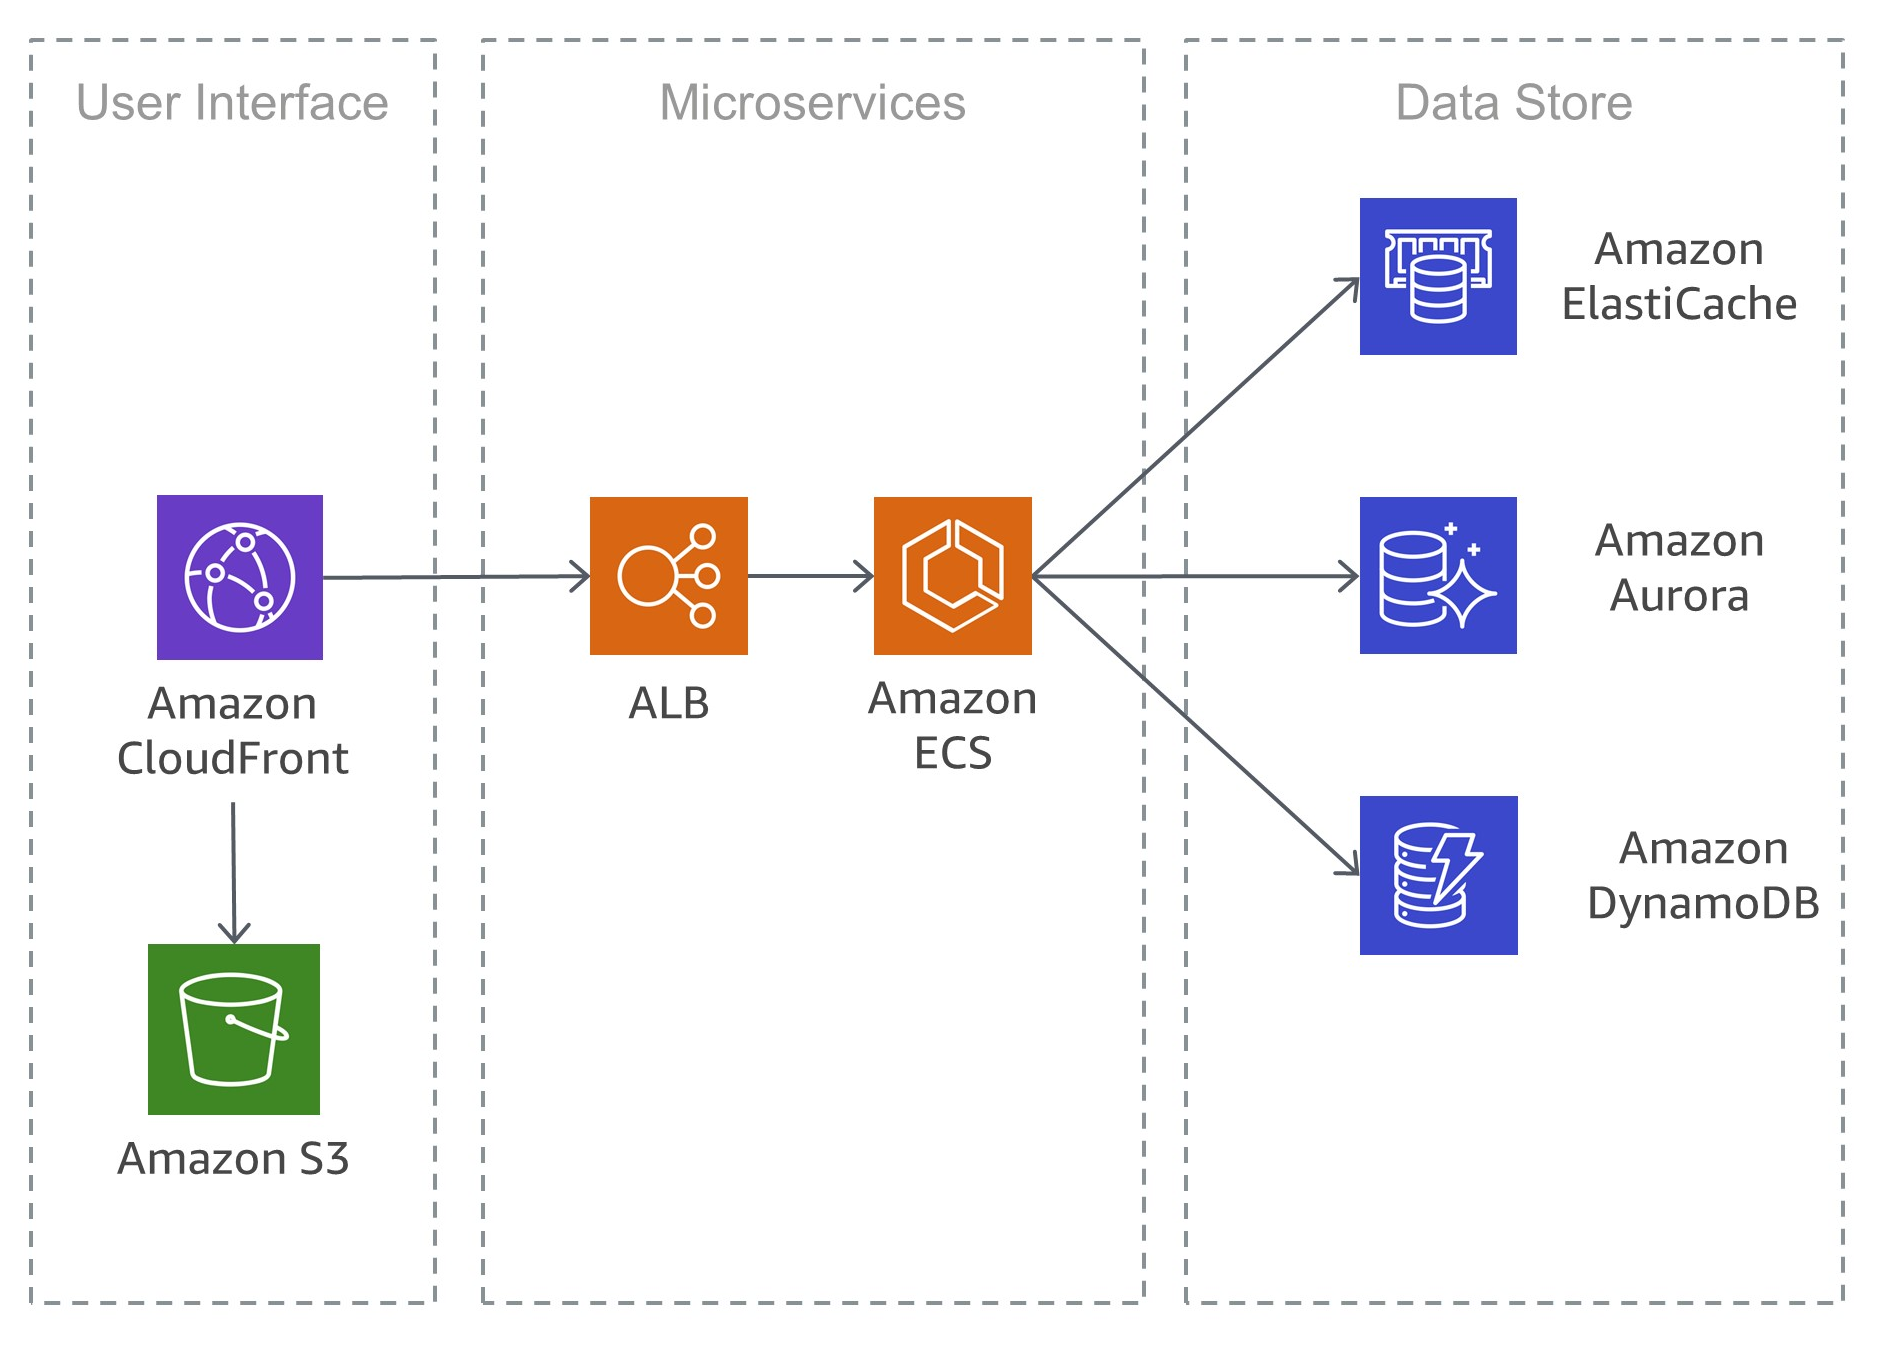 Typical microservices architecture on AWS